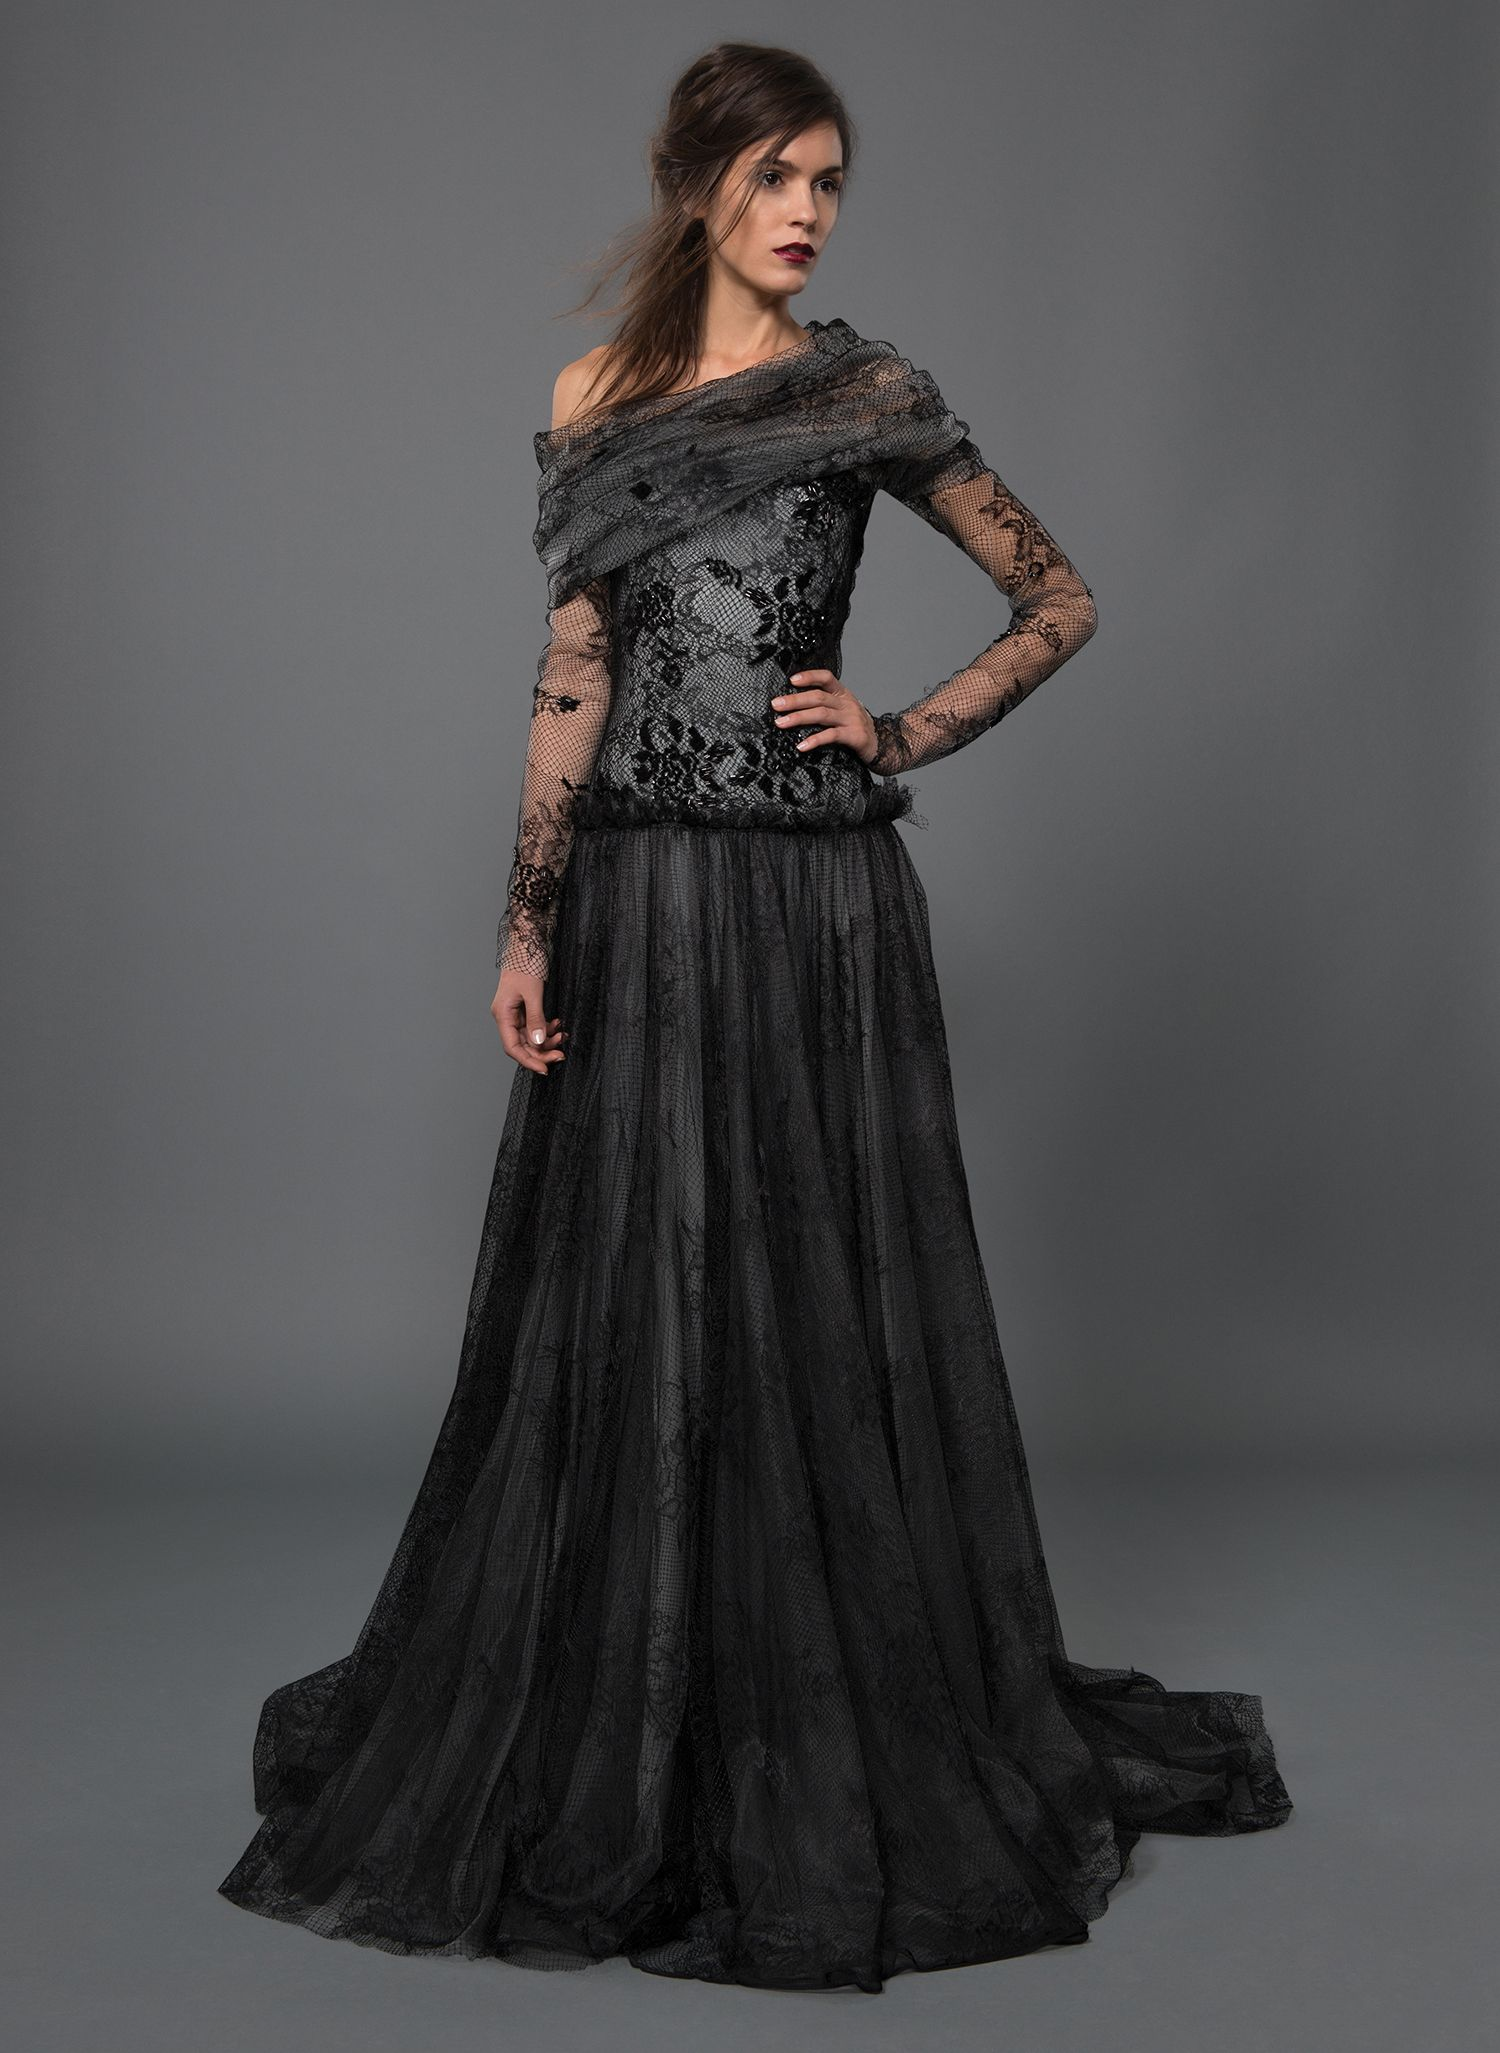 Beaded Tulle And Lace Draped Off Shoulder Long Sleeve Ball Gown In Black Marble Tadashi Shoji Evening Gowns Elegant Gorgeous Dresses Tadashi Shoji Dresses [ 2053 x 1500 Pixel ]